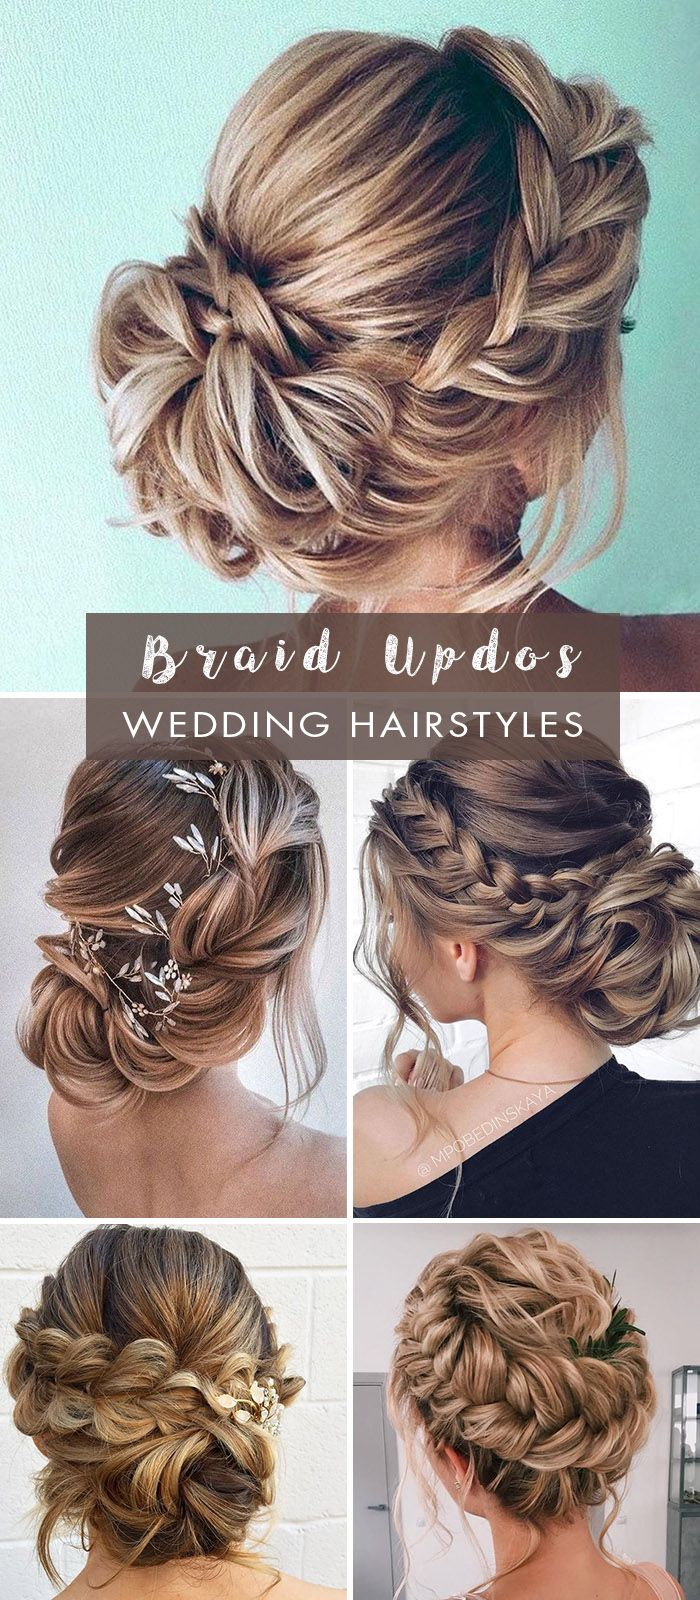 20 Easy And Perfect Updo Hairstyles For Weddings Elegantweddinginvites Com Blog In 2020 Braided Hairstyles Updo Bridal Hair Updo Loose Loose Braid Hairstyles